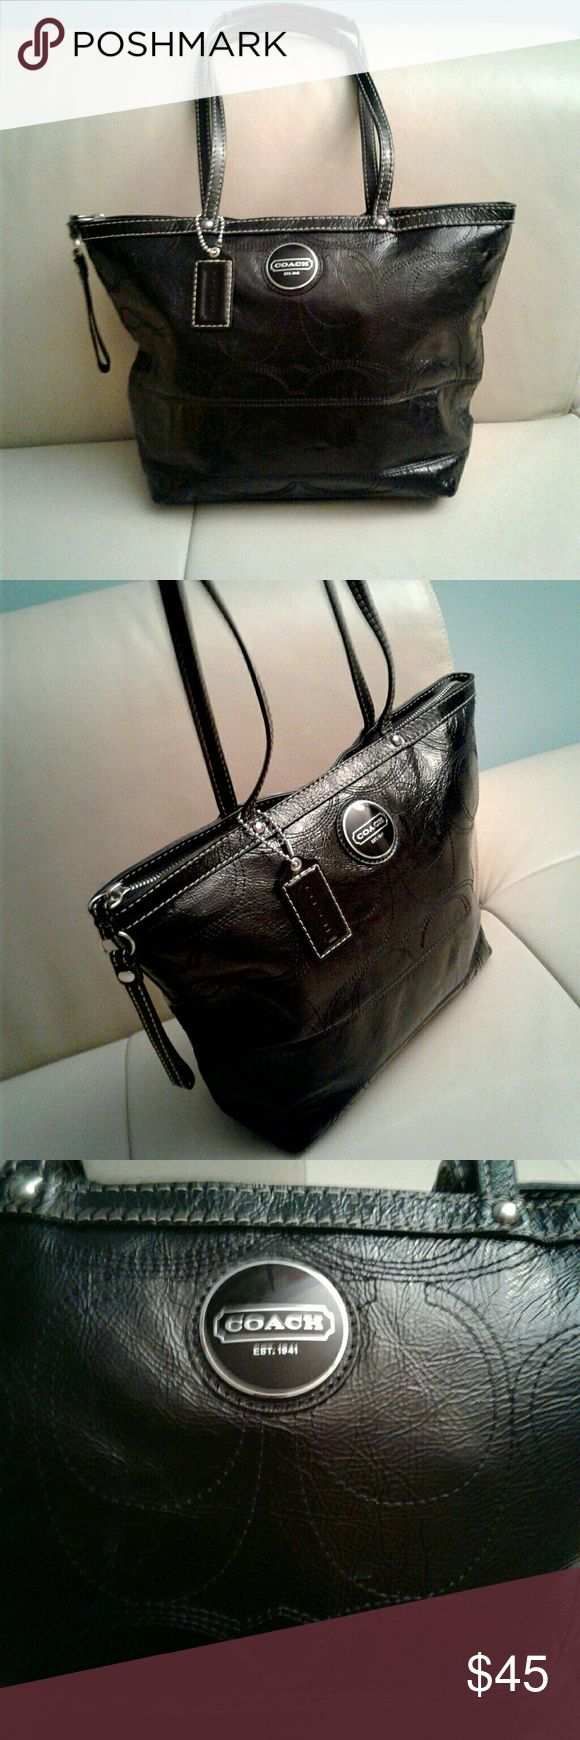 COACH TOTE BAG PATENT LEATHER F15142 Black coach shining black patent leather used but in good condition litle signs of wear inside the bag  see the last pics . Coach Bags Shoulder Bags